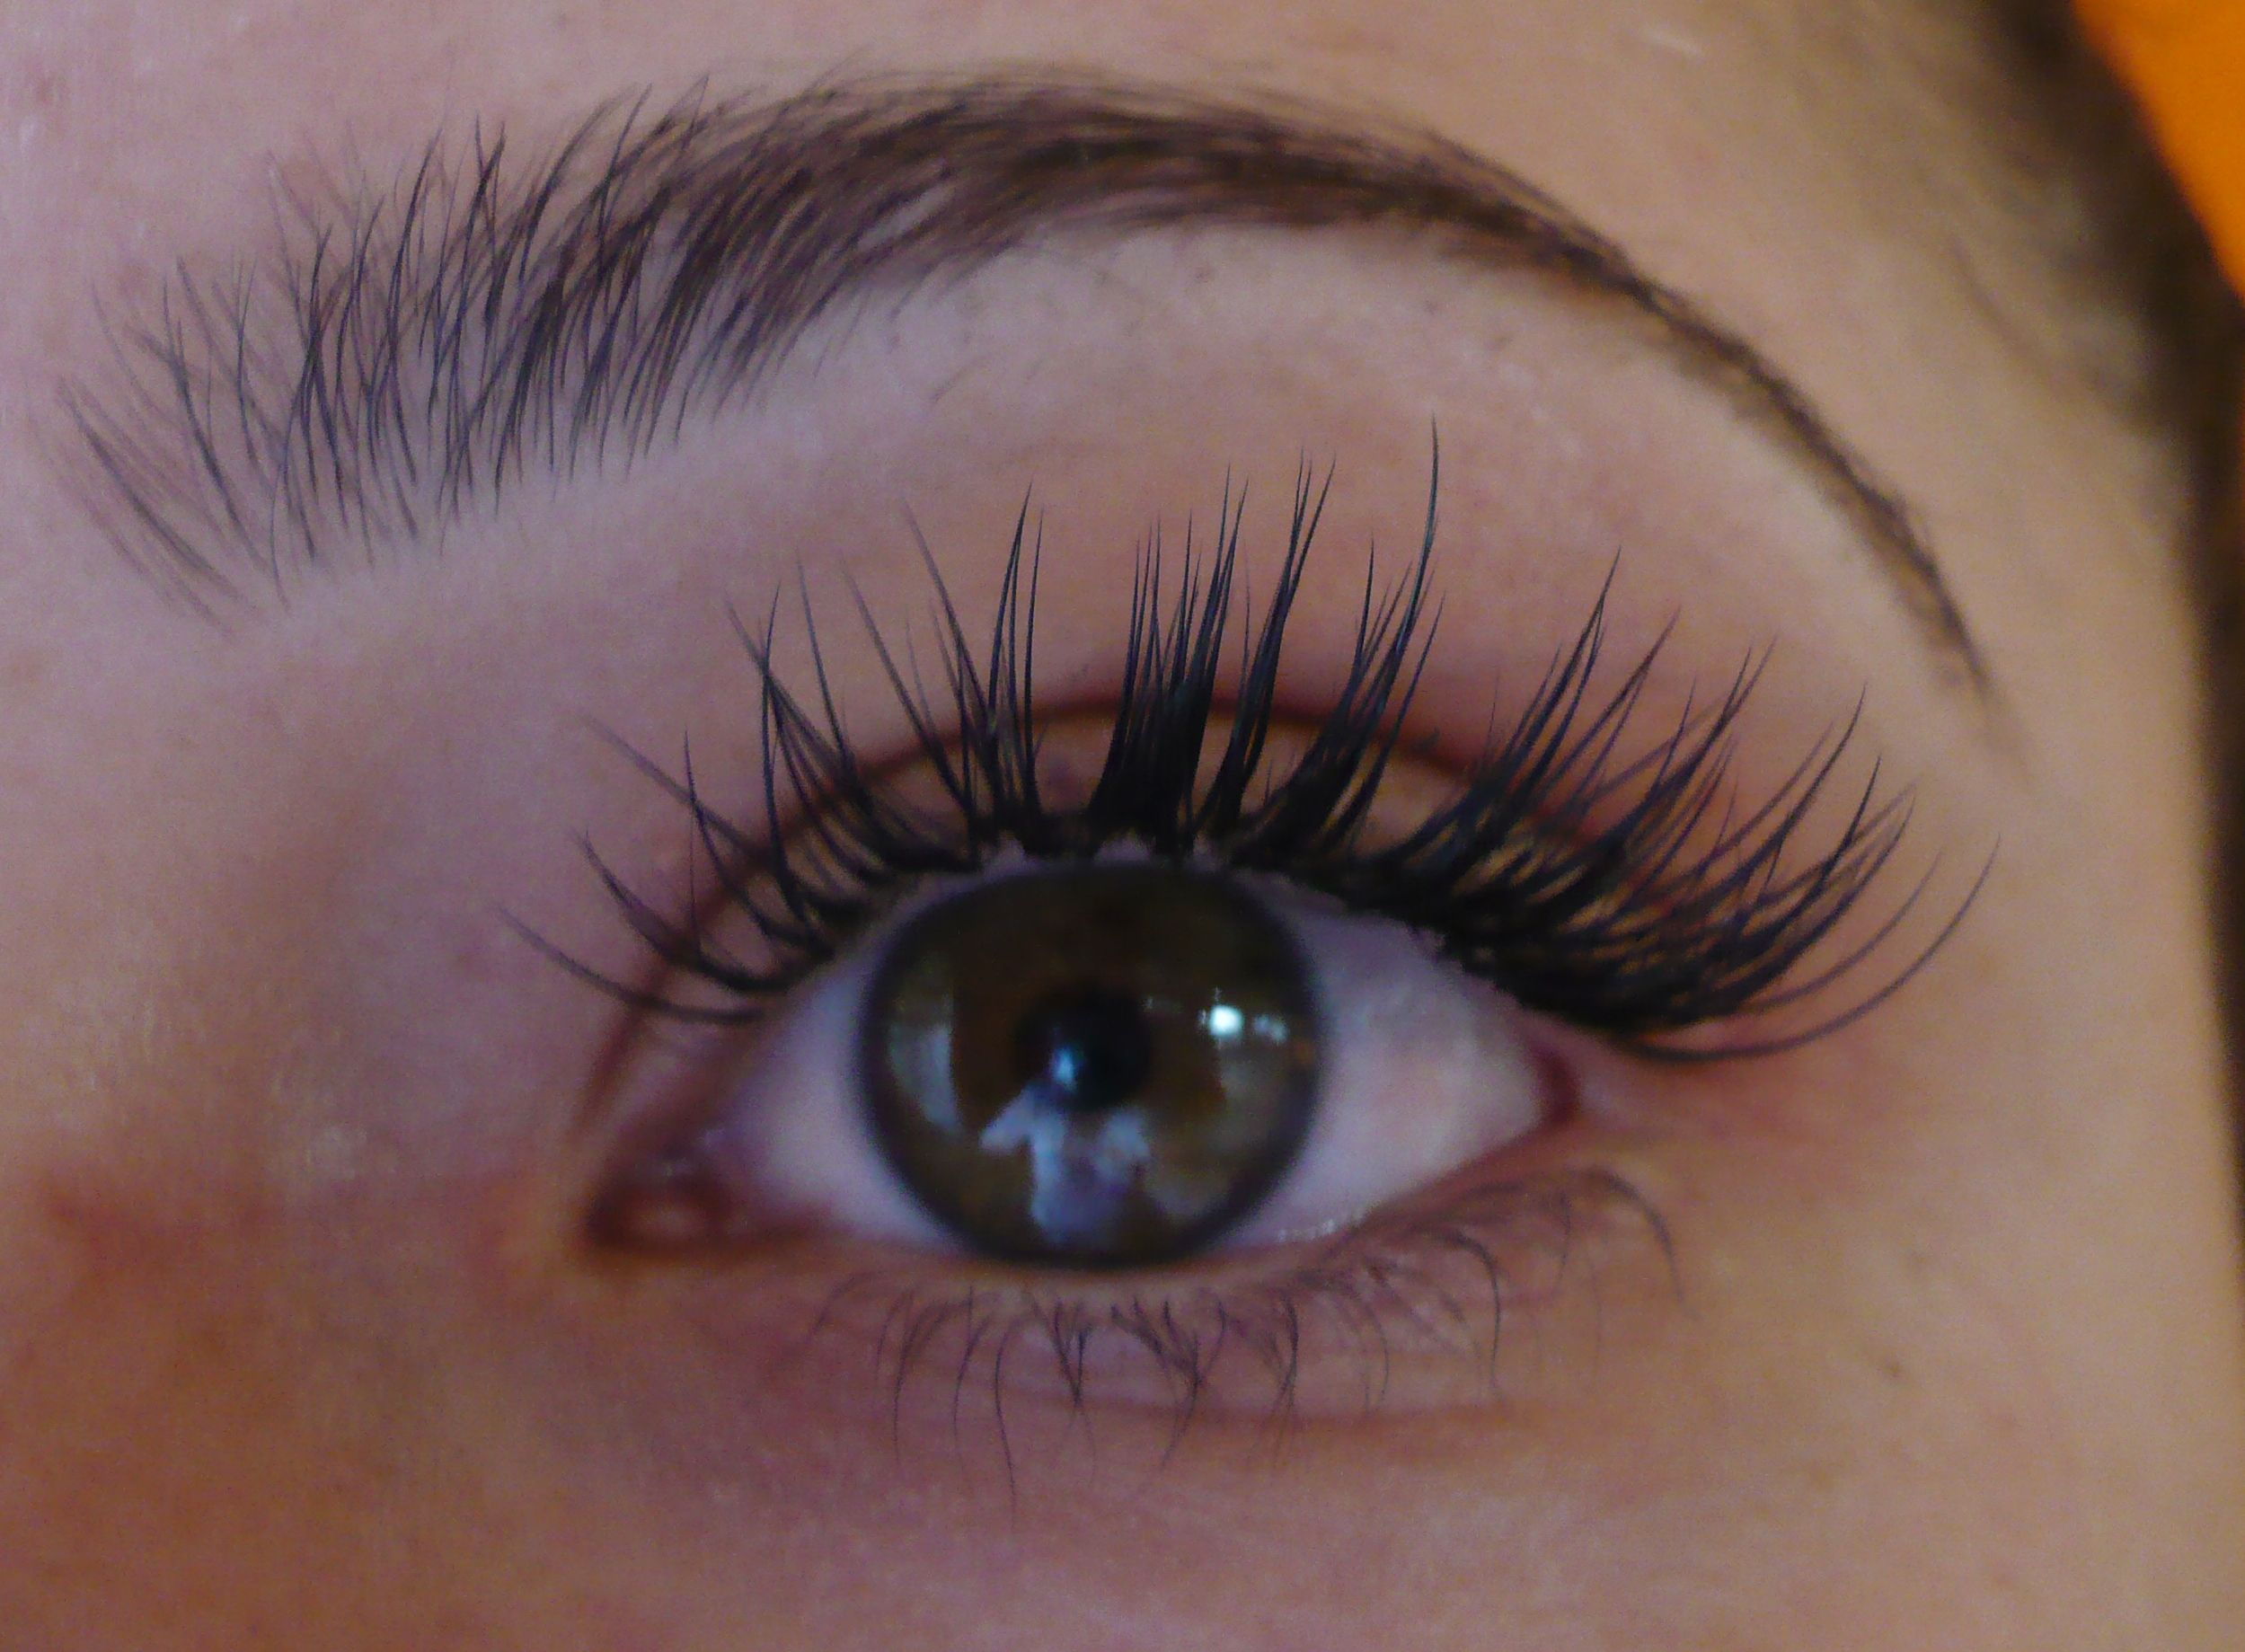 Eyelash Extensions Are Something You Really Need To Think About The